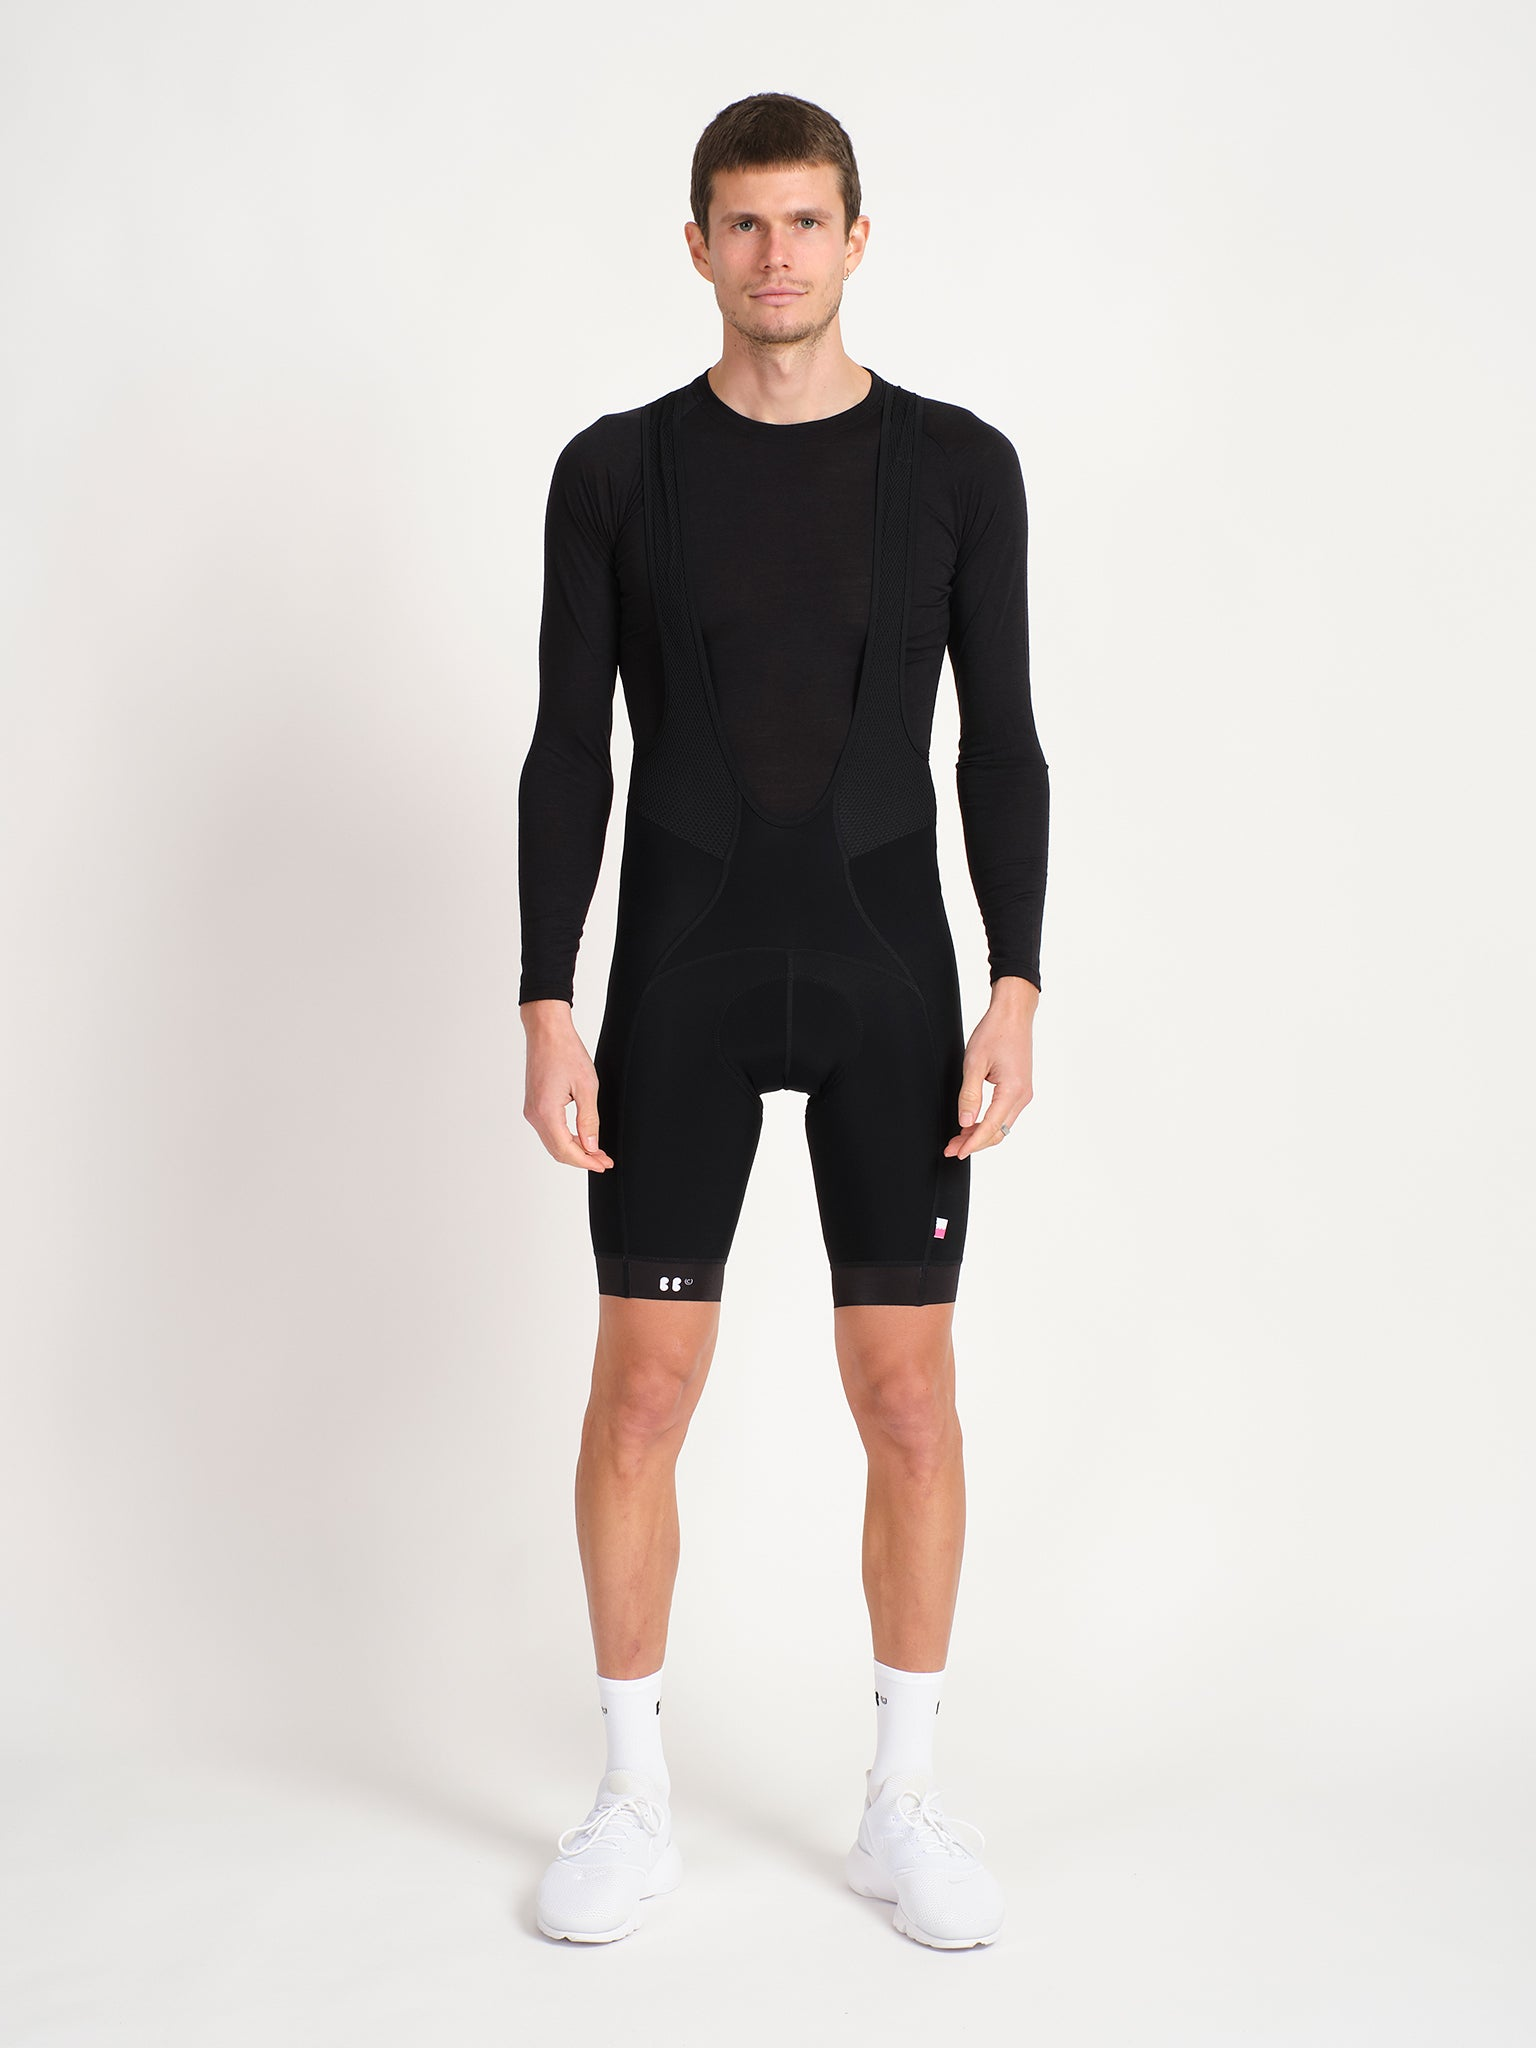 Male model facing forward wearing black merino baselayer.